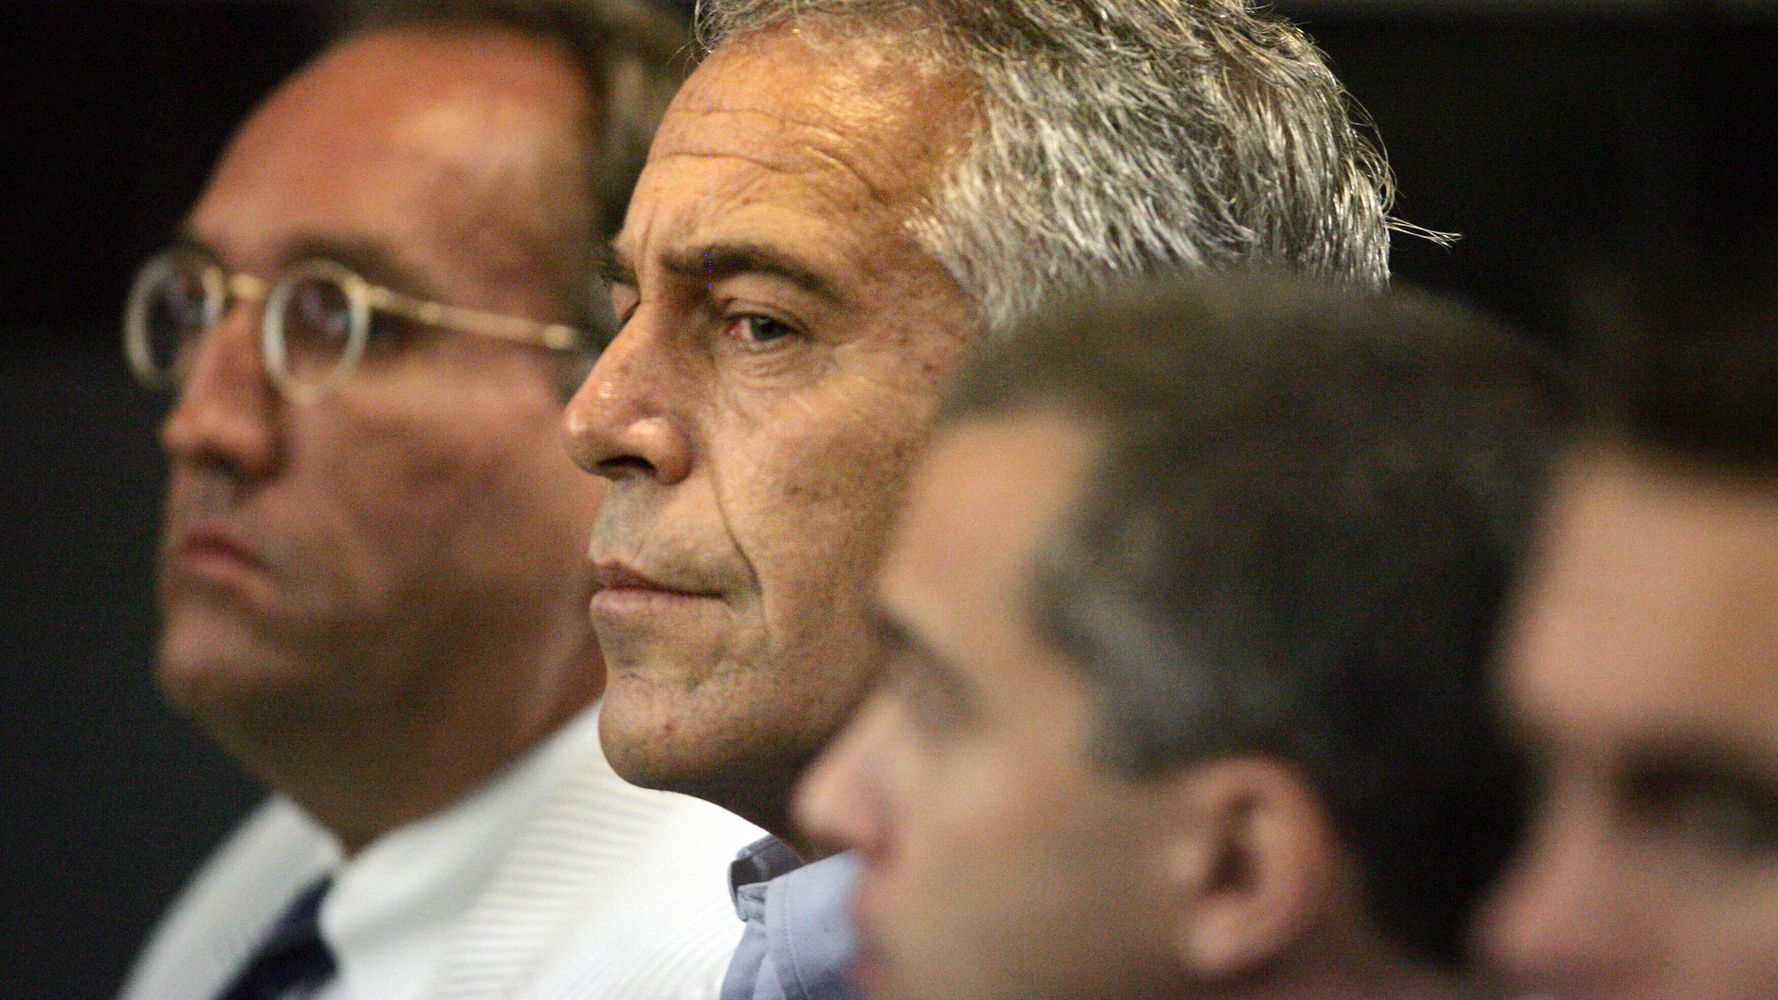 Westlake Legal Group 5d5228252200005500f4ef7c One Of Jeffrey Epstein's Guards Was A Temp Correctional Officer: Report